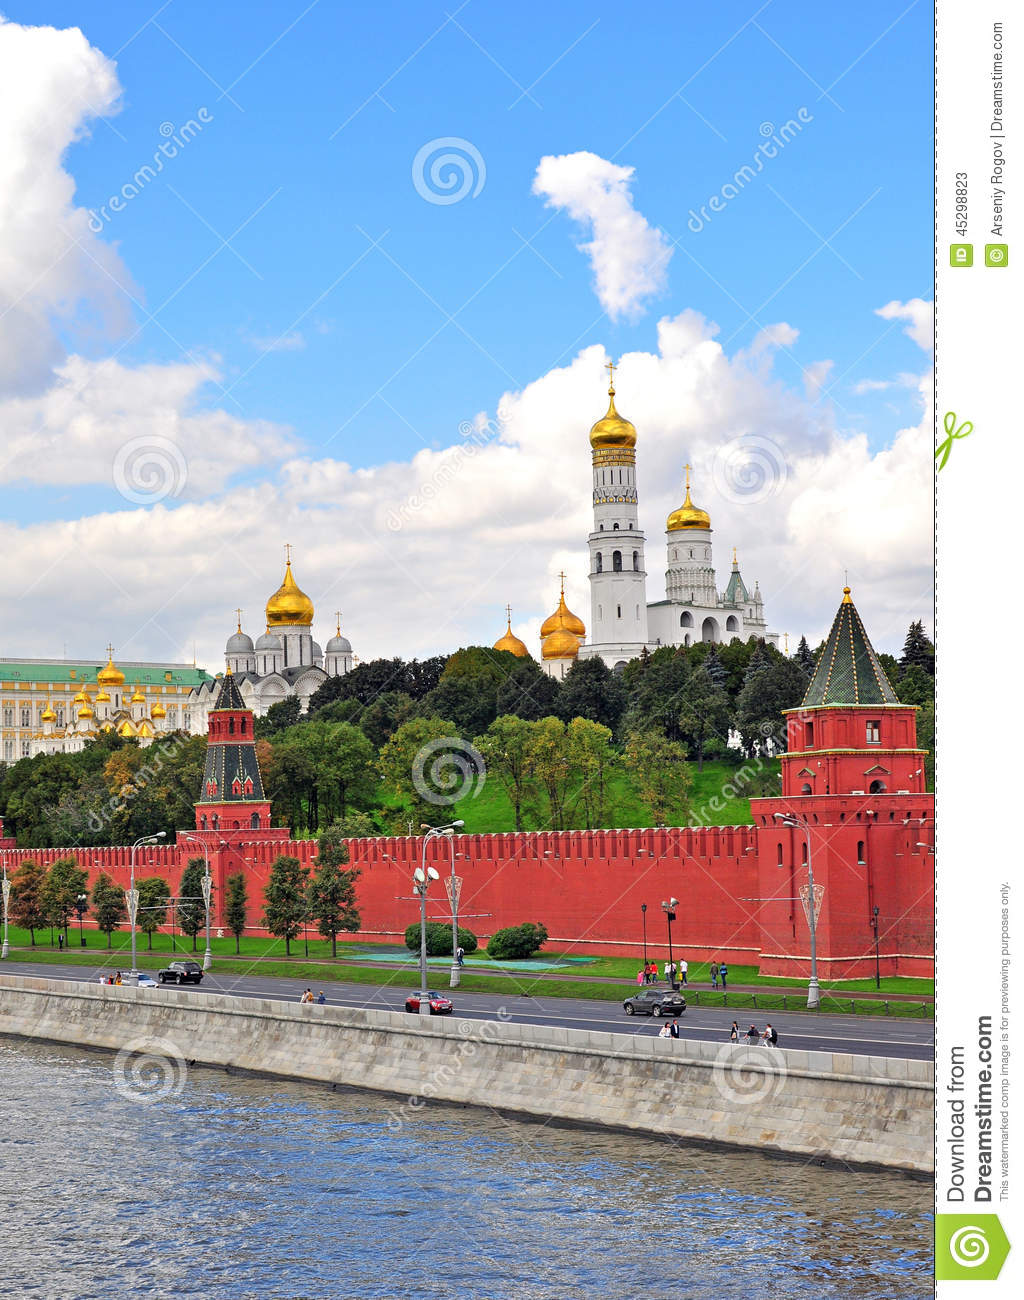 Moscow landmarks stock photo image 45298823 for Famous landmarks in russia